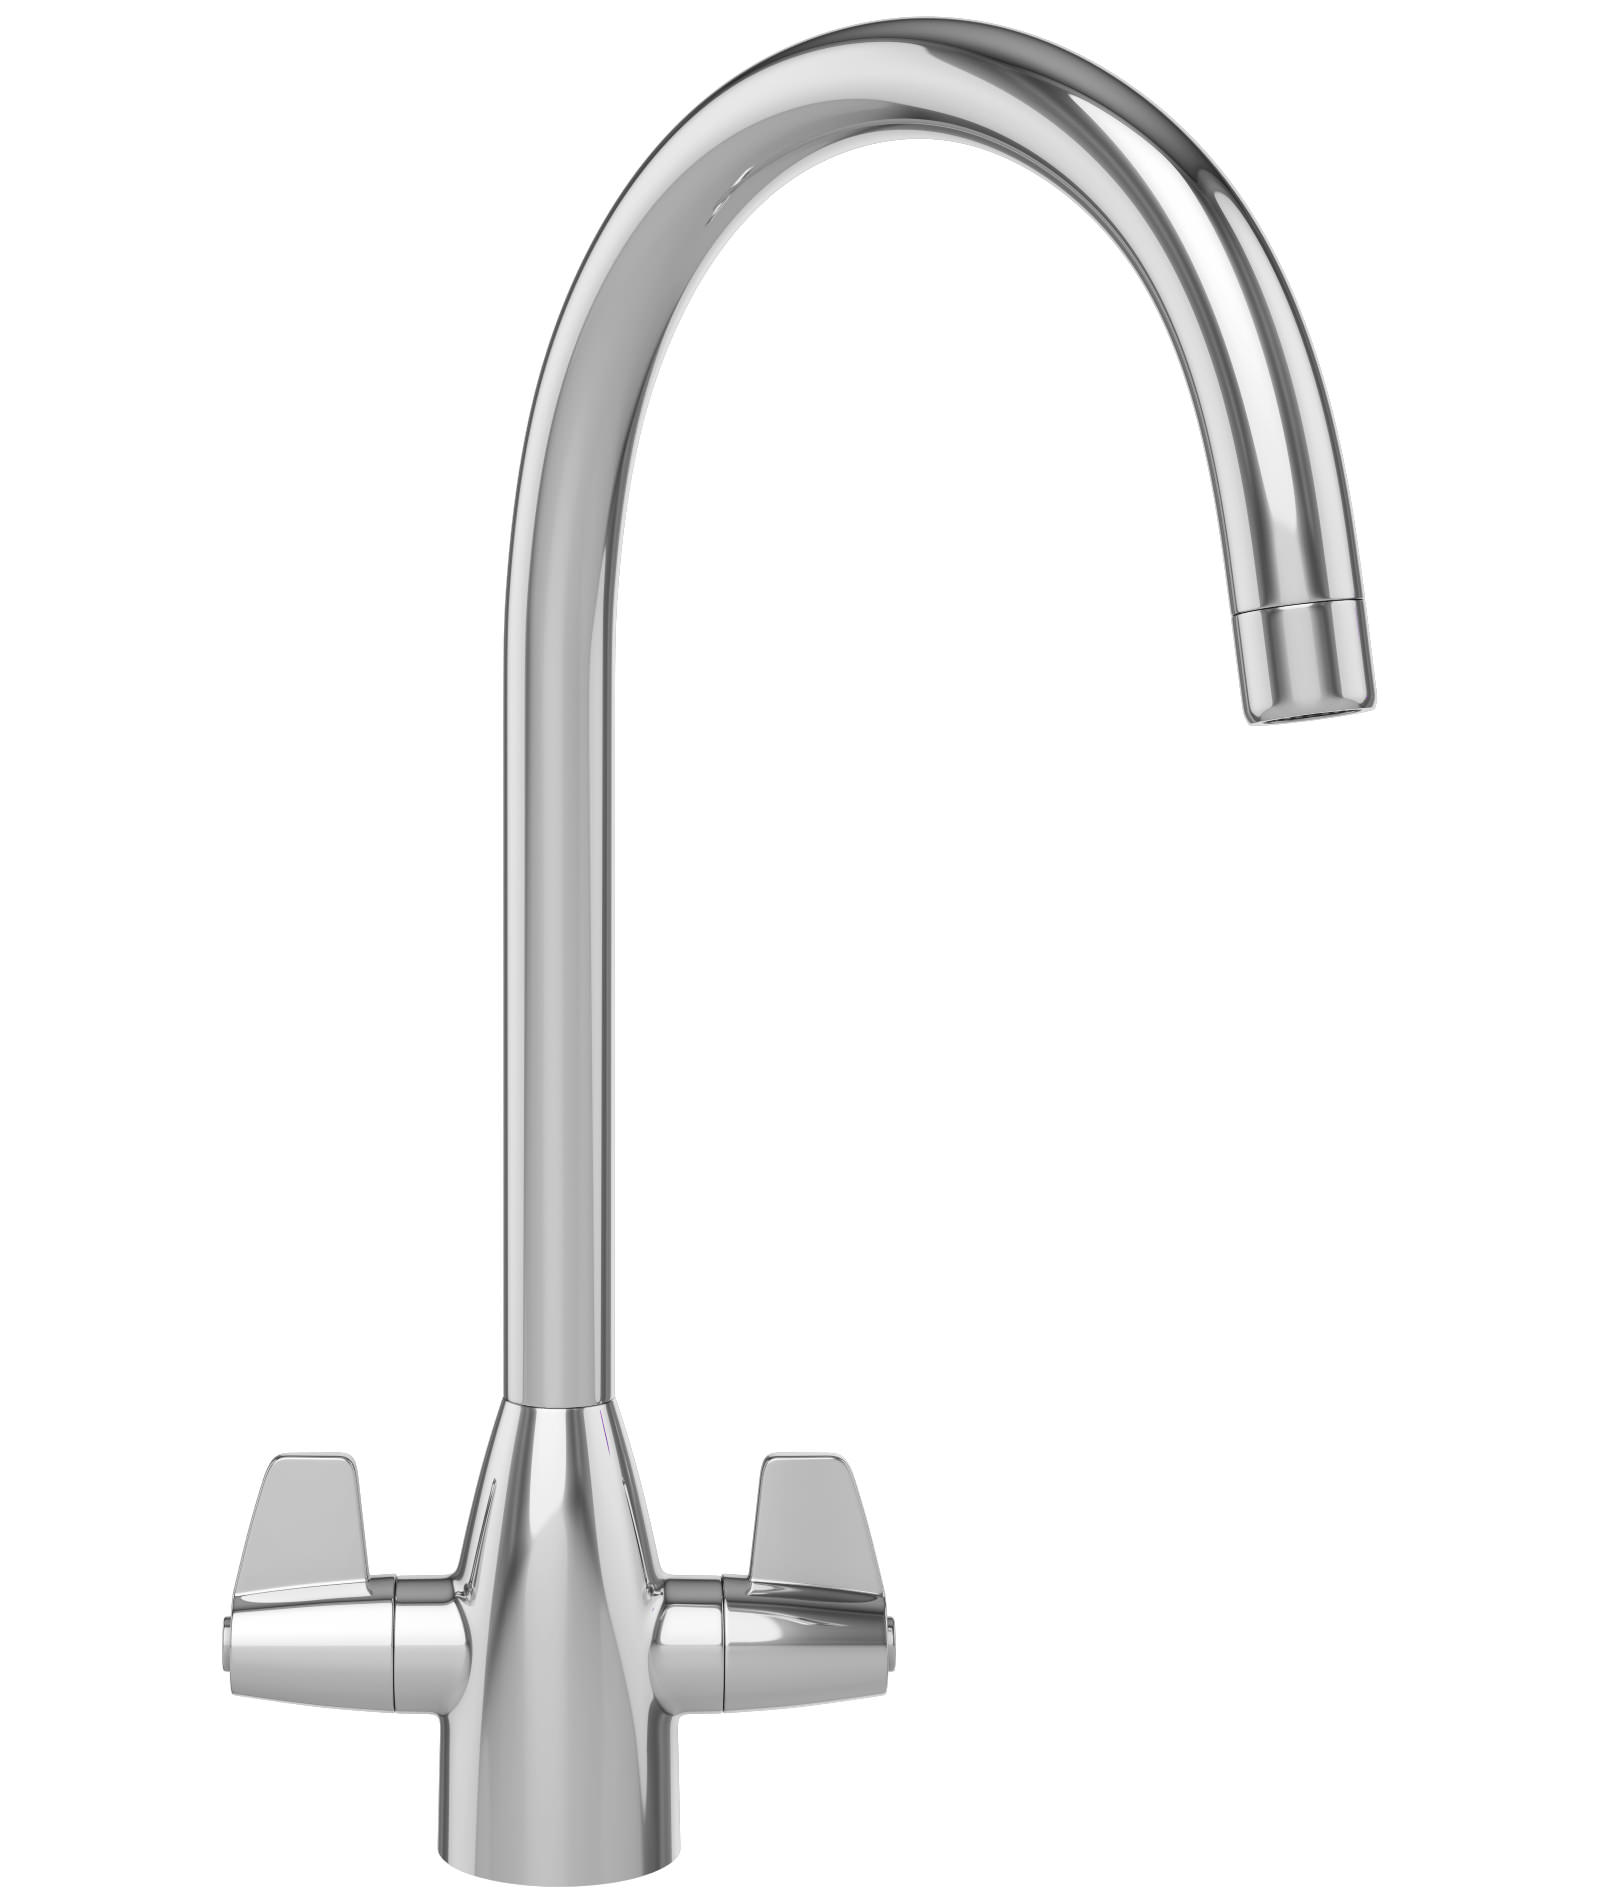 franke davos j kitchen sink mixer tap chrome - Kitchen Sink Mixer Taps